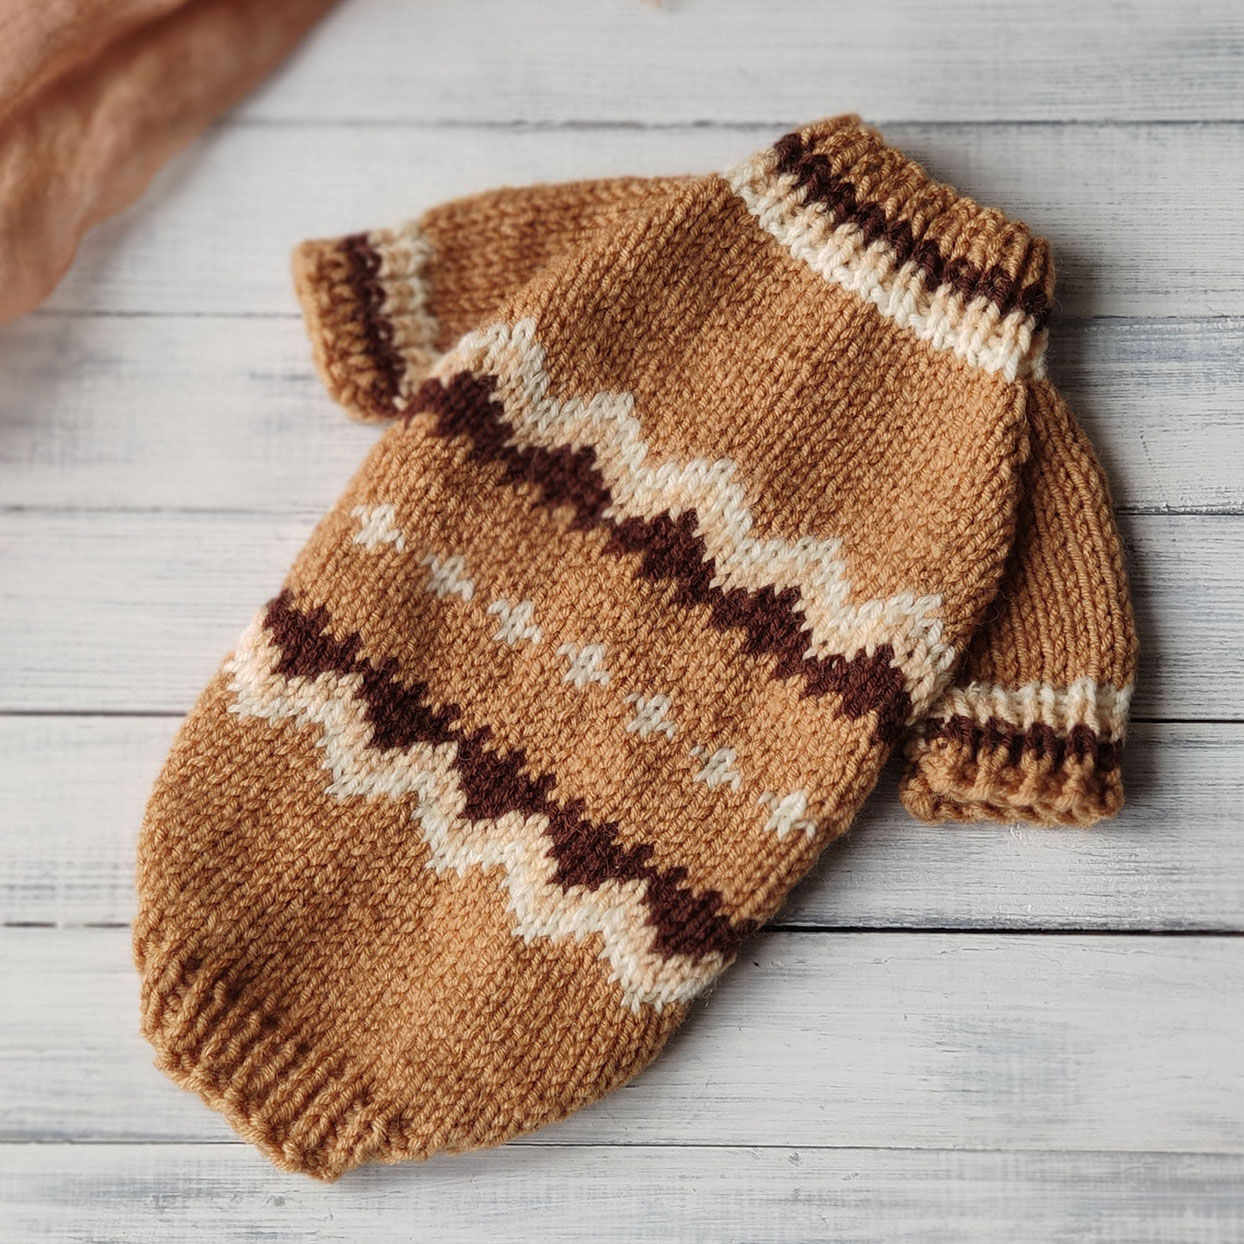 Brown patterned knit dog sweater that looks like Bernie Sanders' mittens from the 2021 presidential inauguration